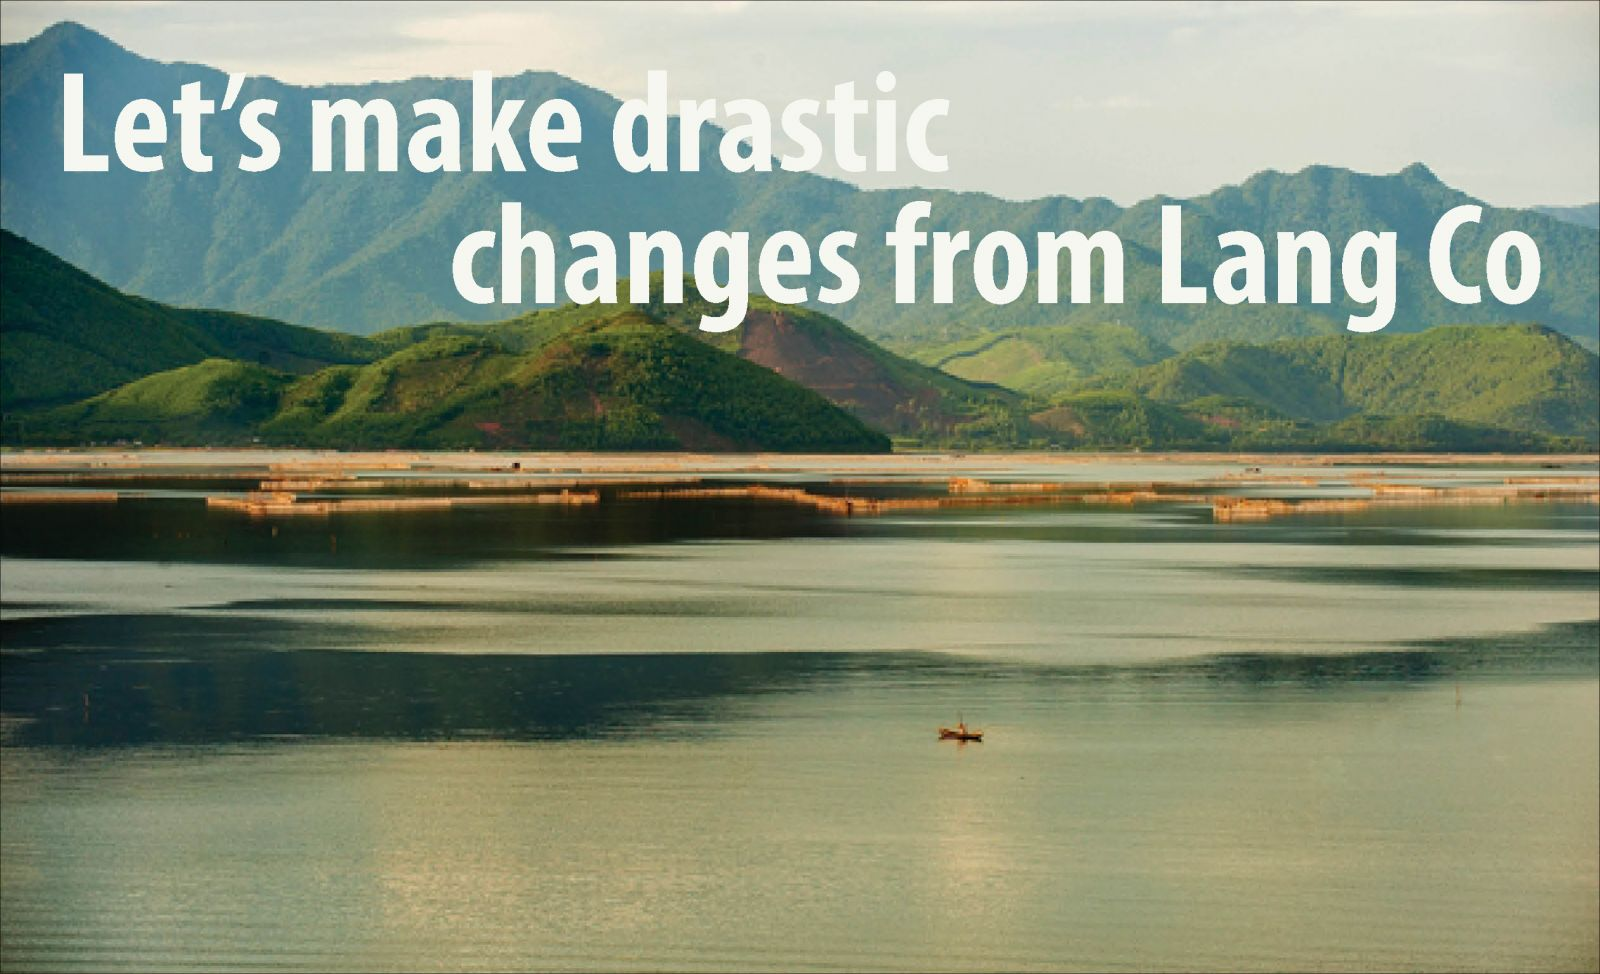 Let's make drastic changes from Lang Co